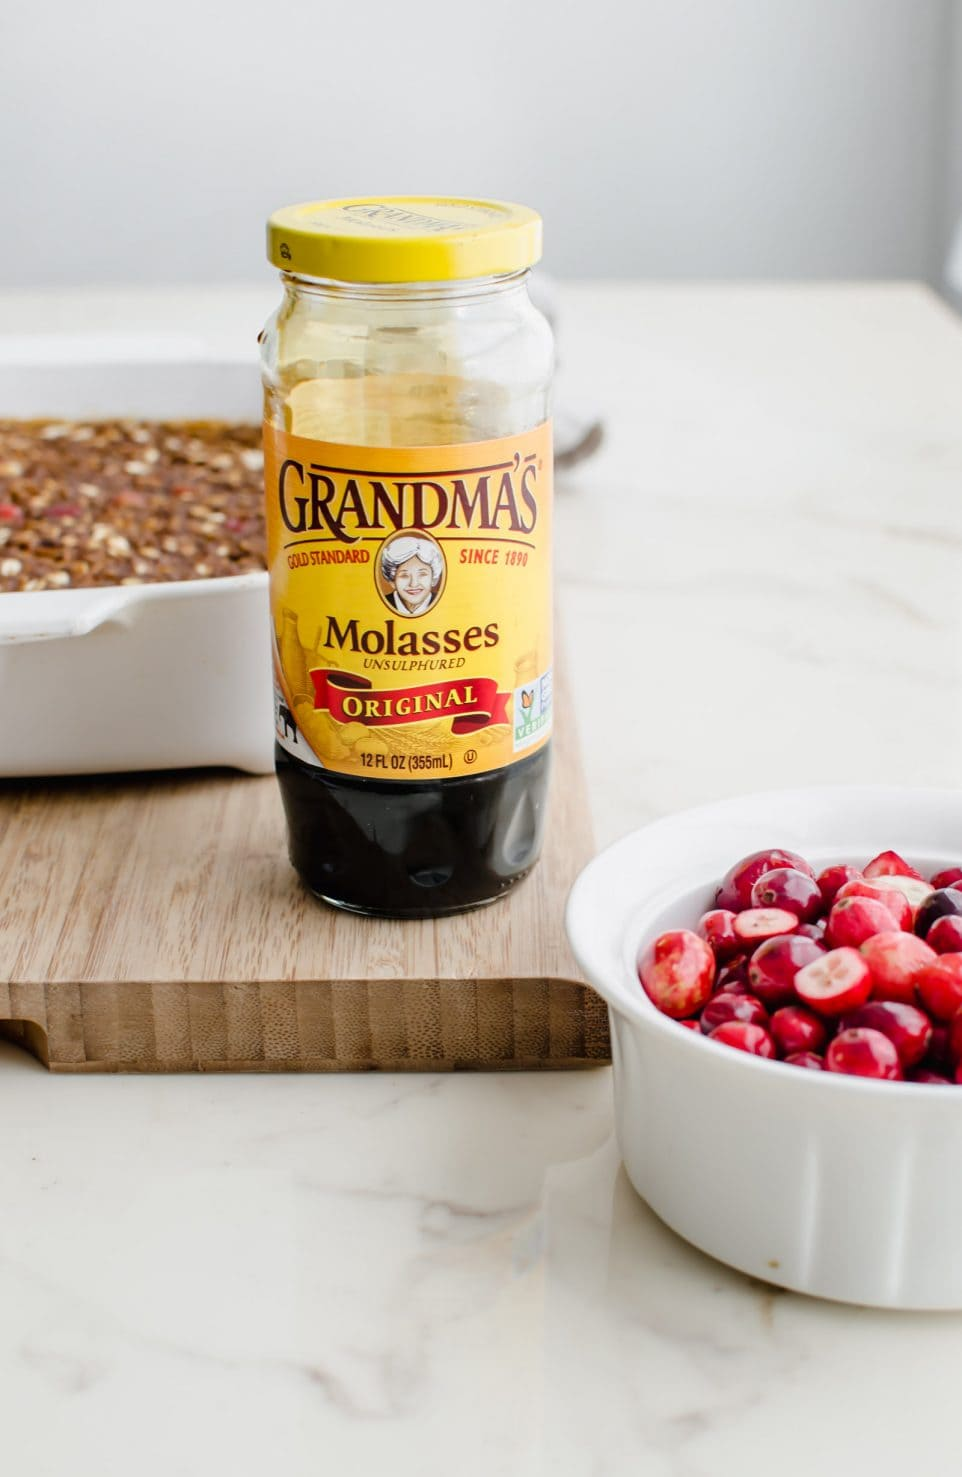 A bottle of Grandma's molasses next to a bowl of cranberries and gingerbread baked oatmeal.